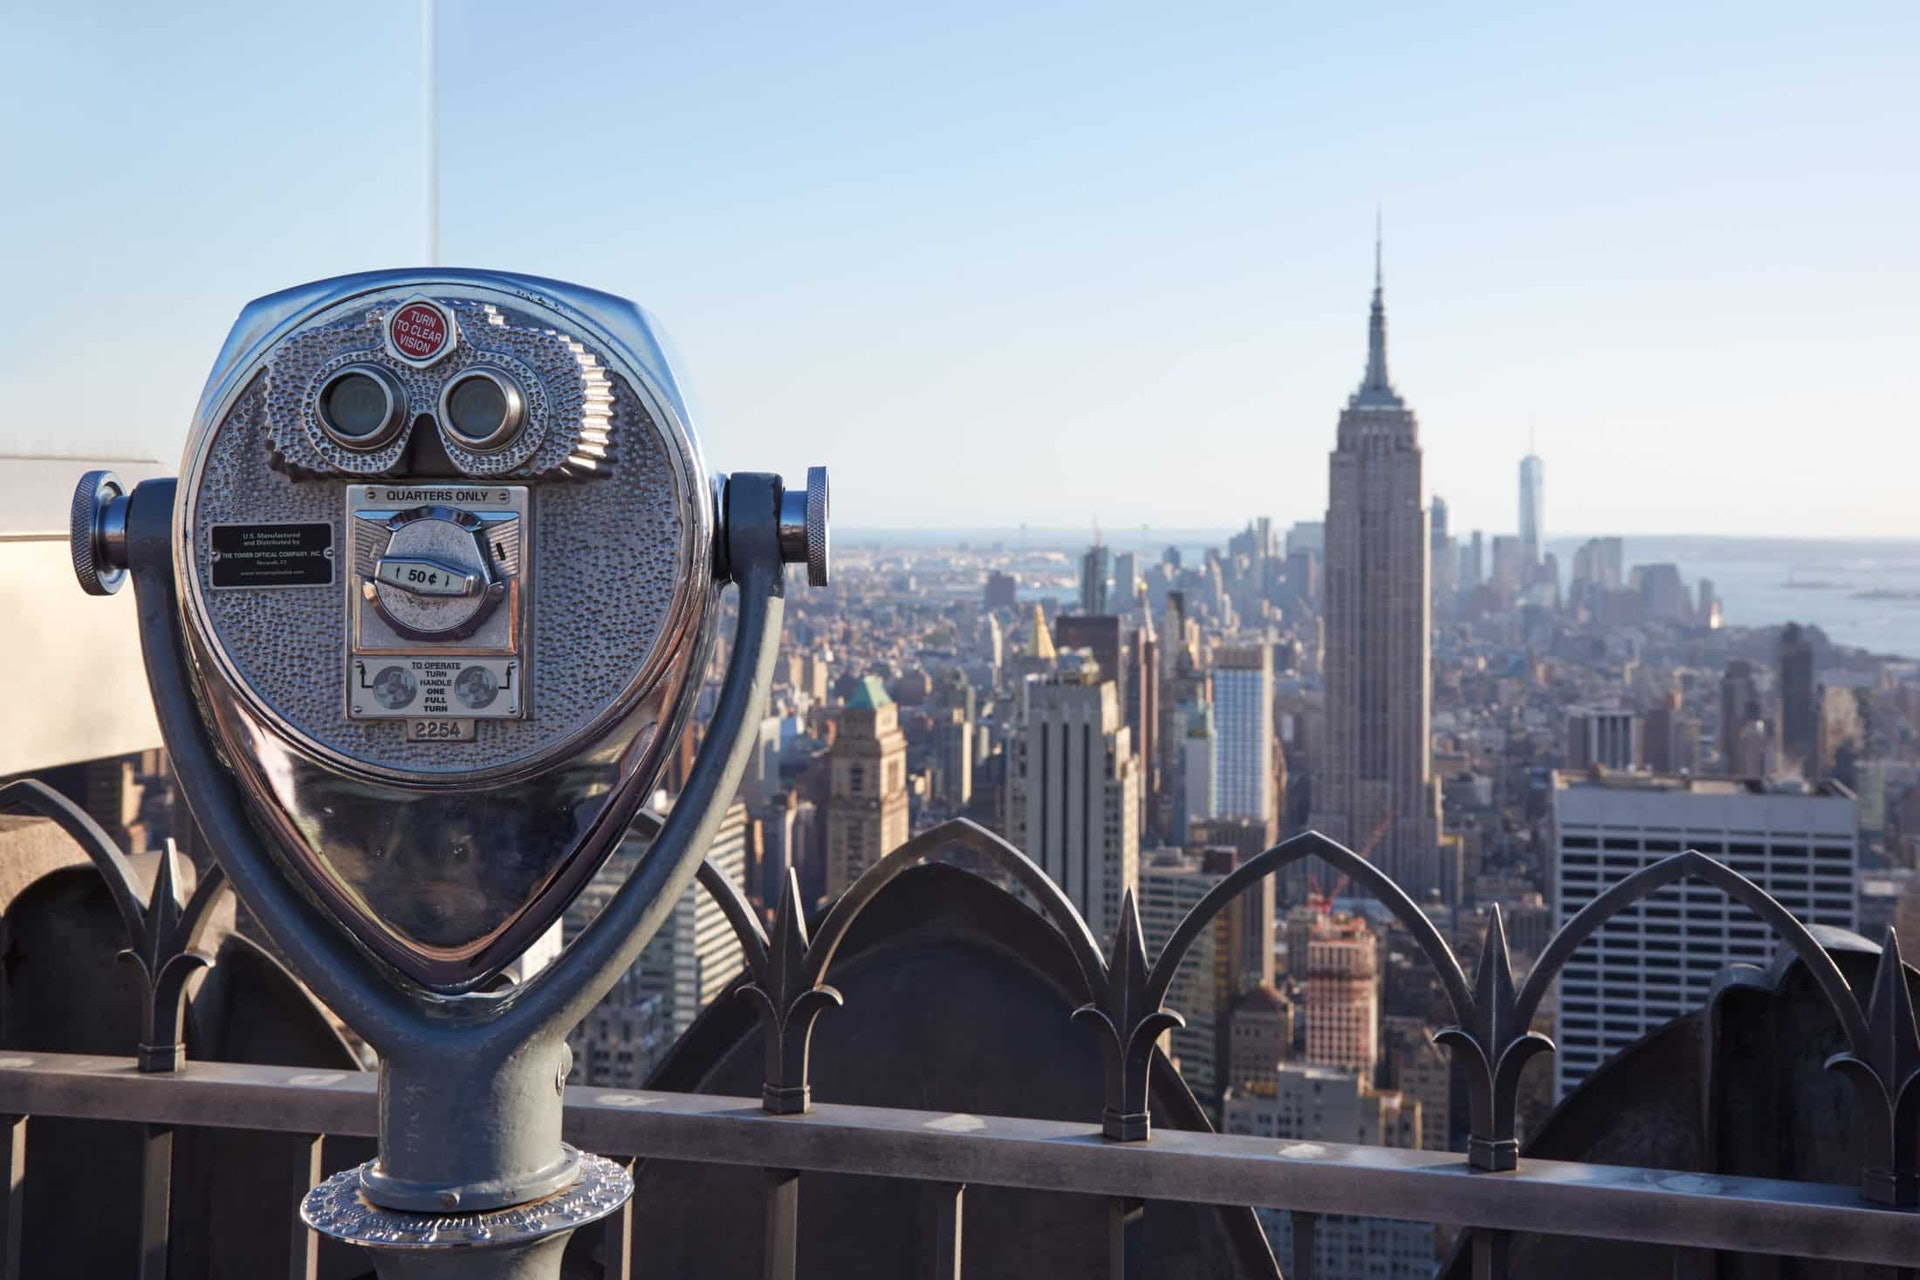 Binoculars on Rockefeller Center with Empire State Building and city view at the end of the day in New York